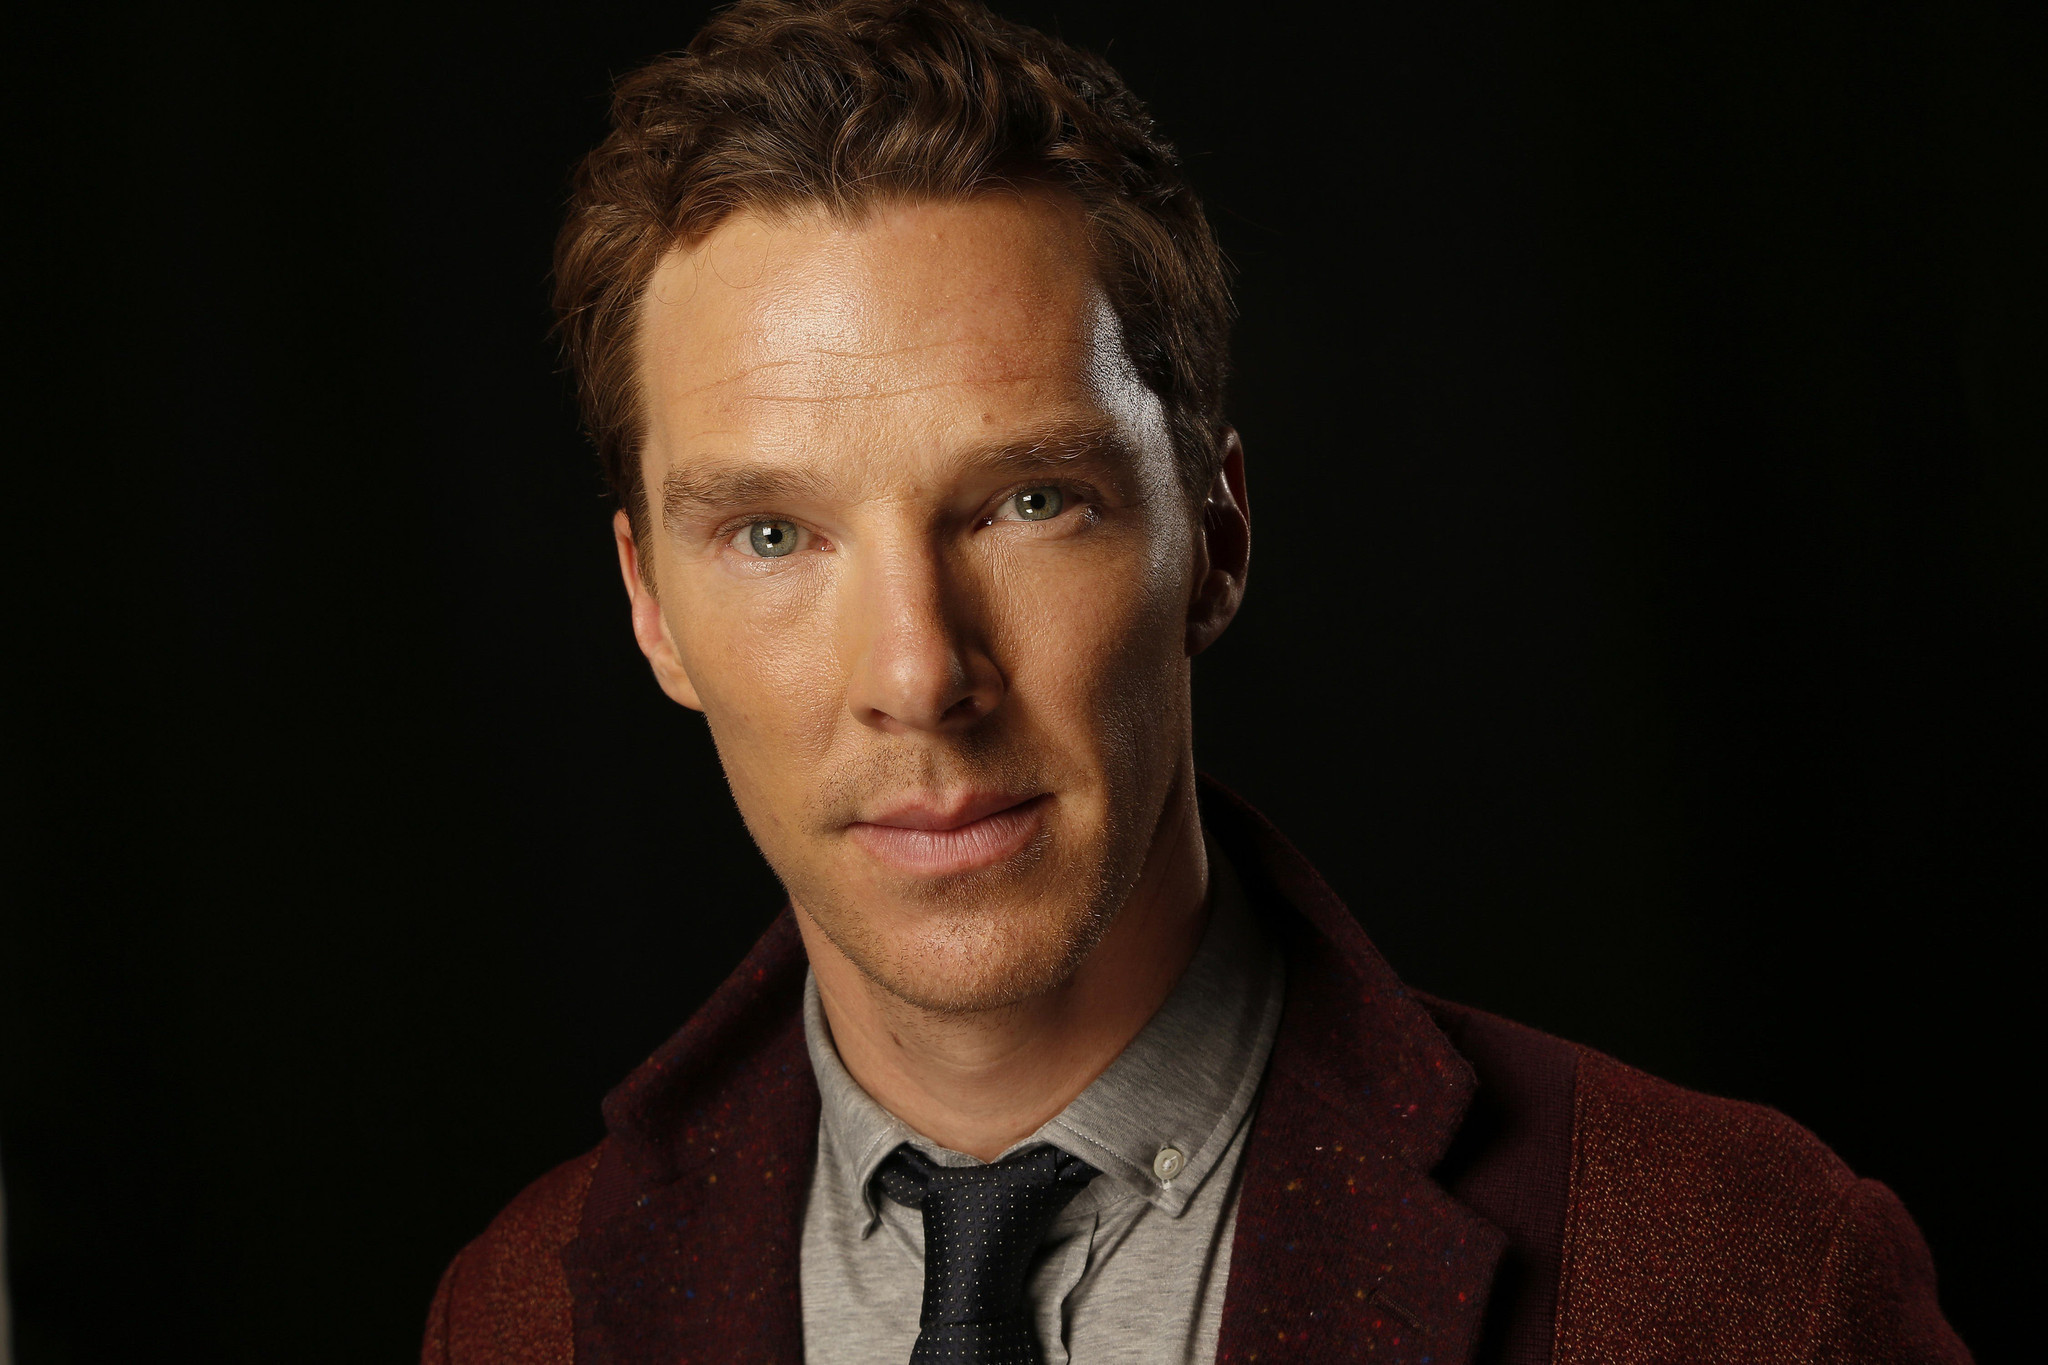 Benedict Cumberbatch in 'Hamlet': Where to watch it in ... Benedict Cumberbatch